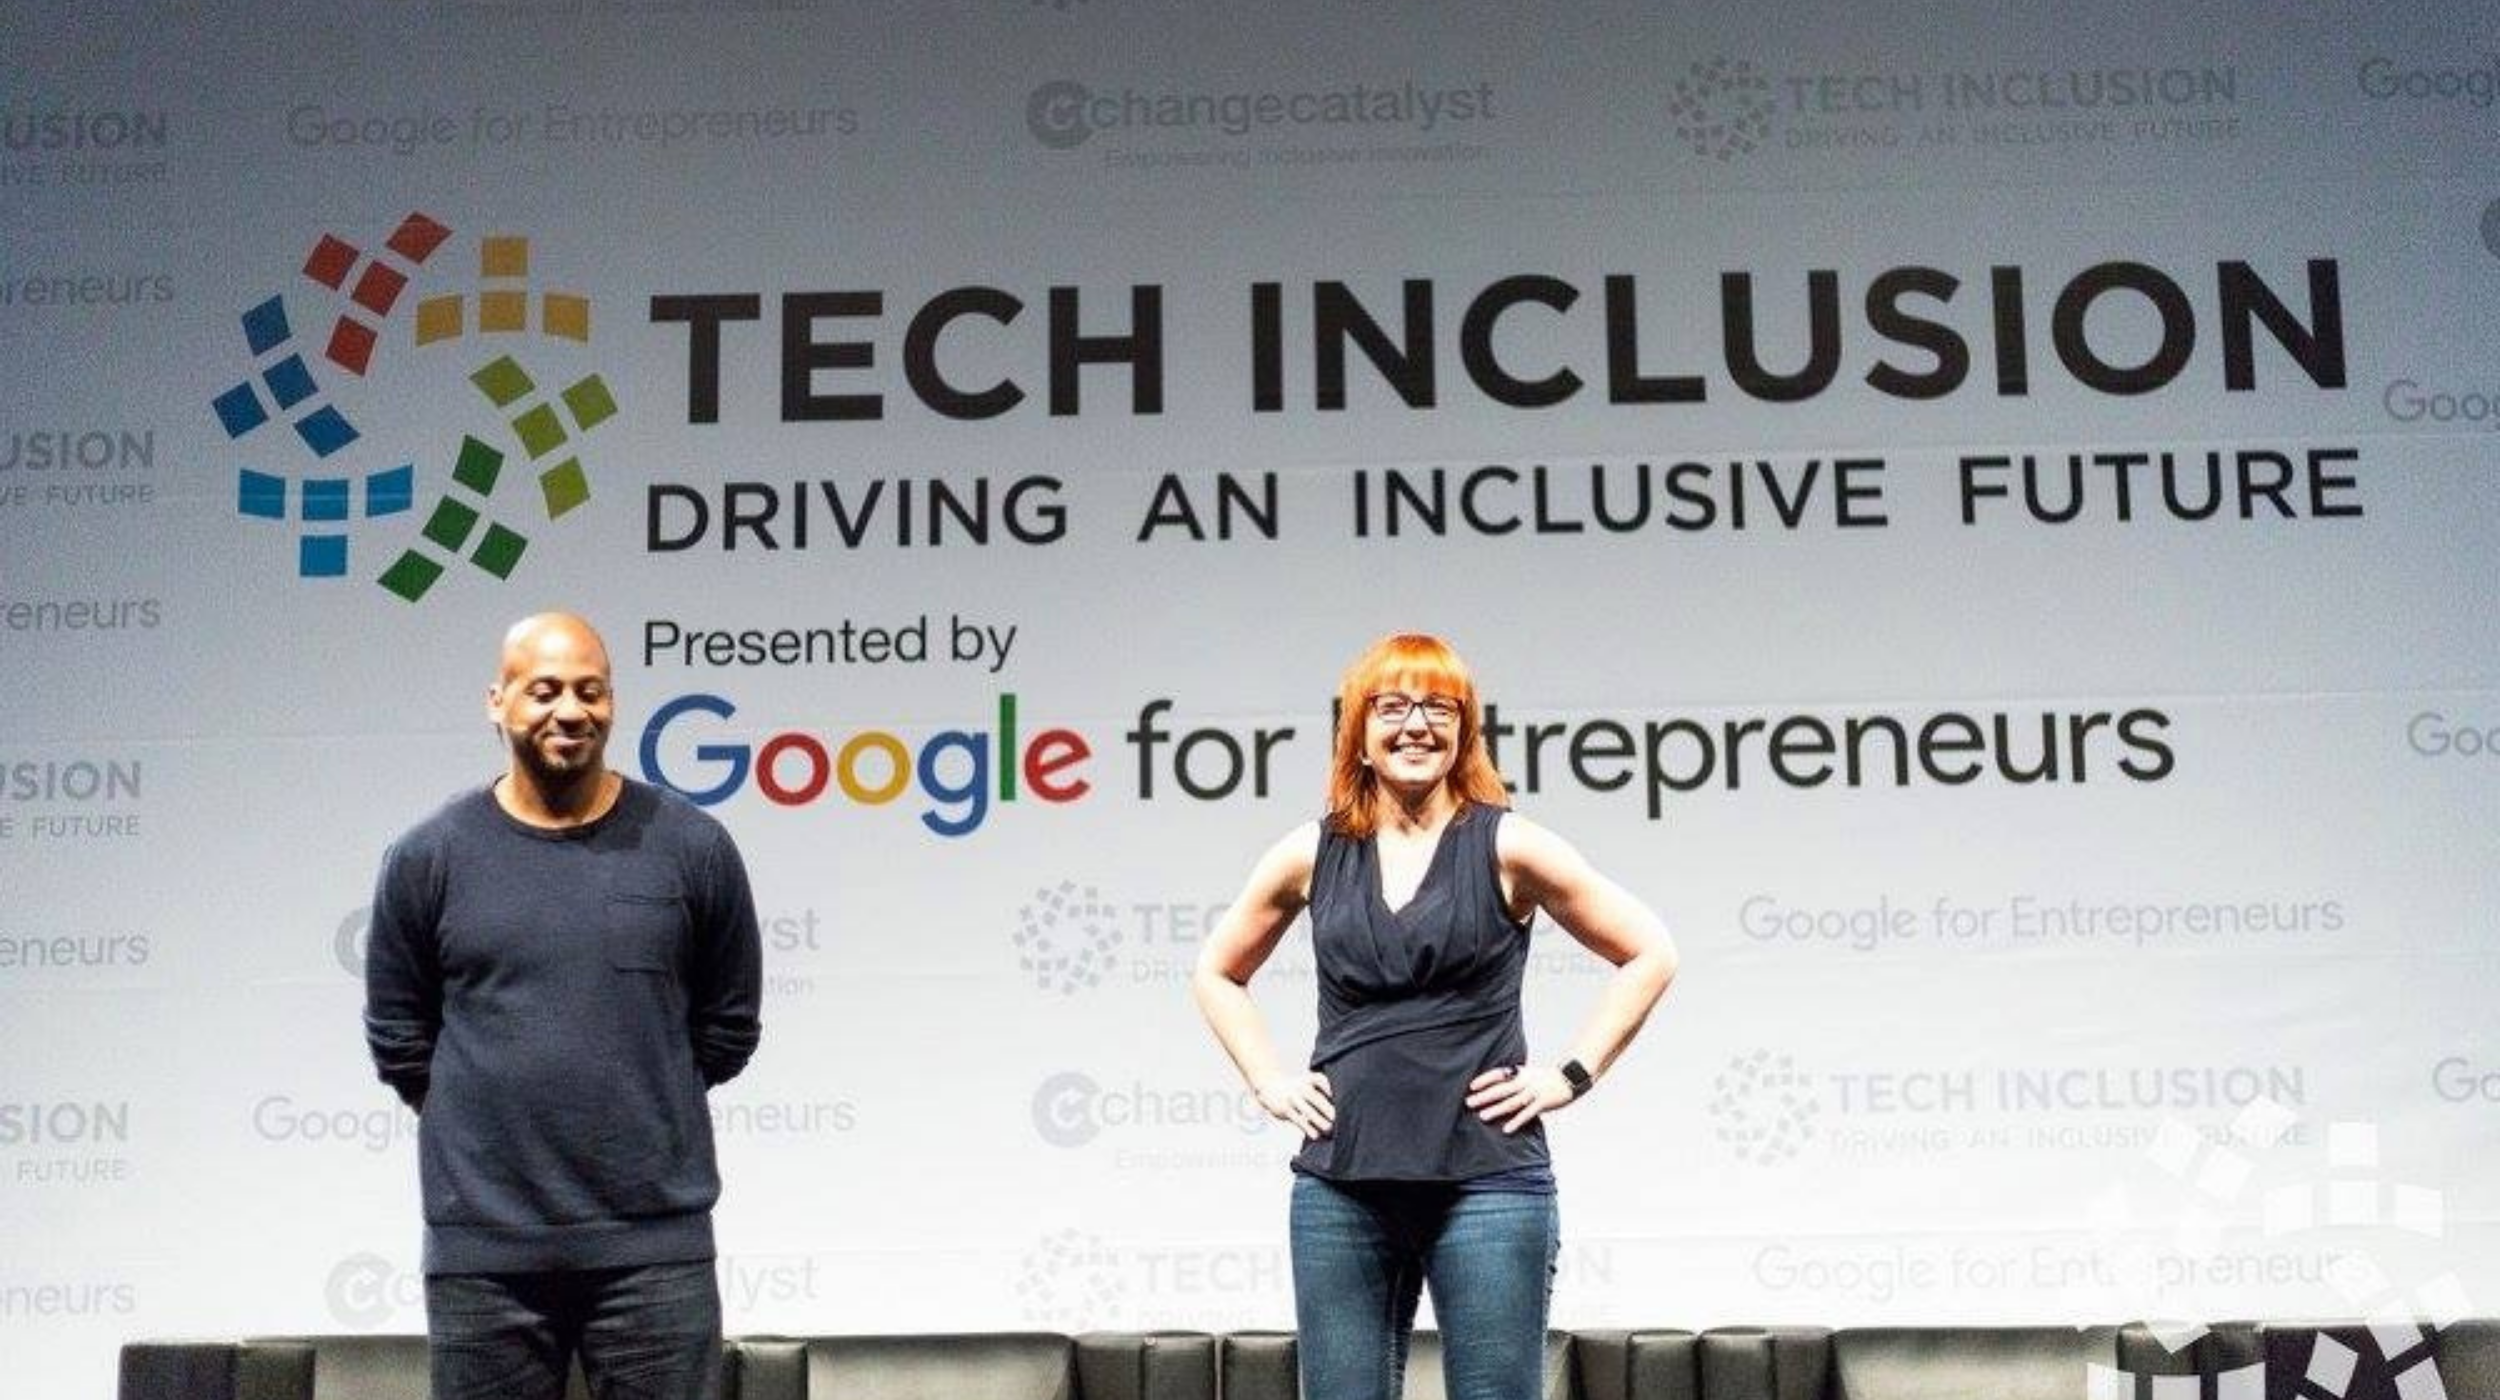 women in tech (image: tech inclusion panel with man and woman on stage)